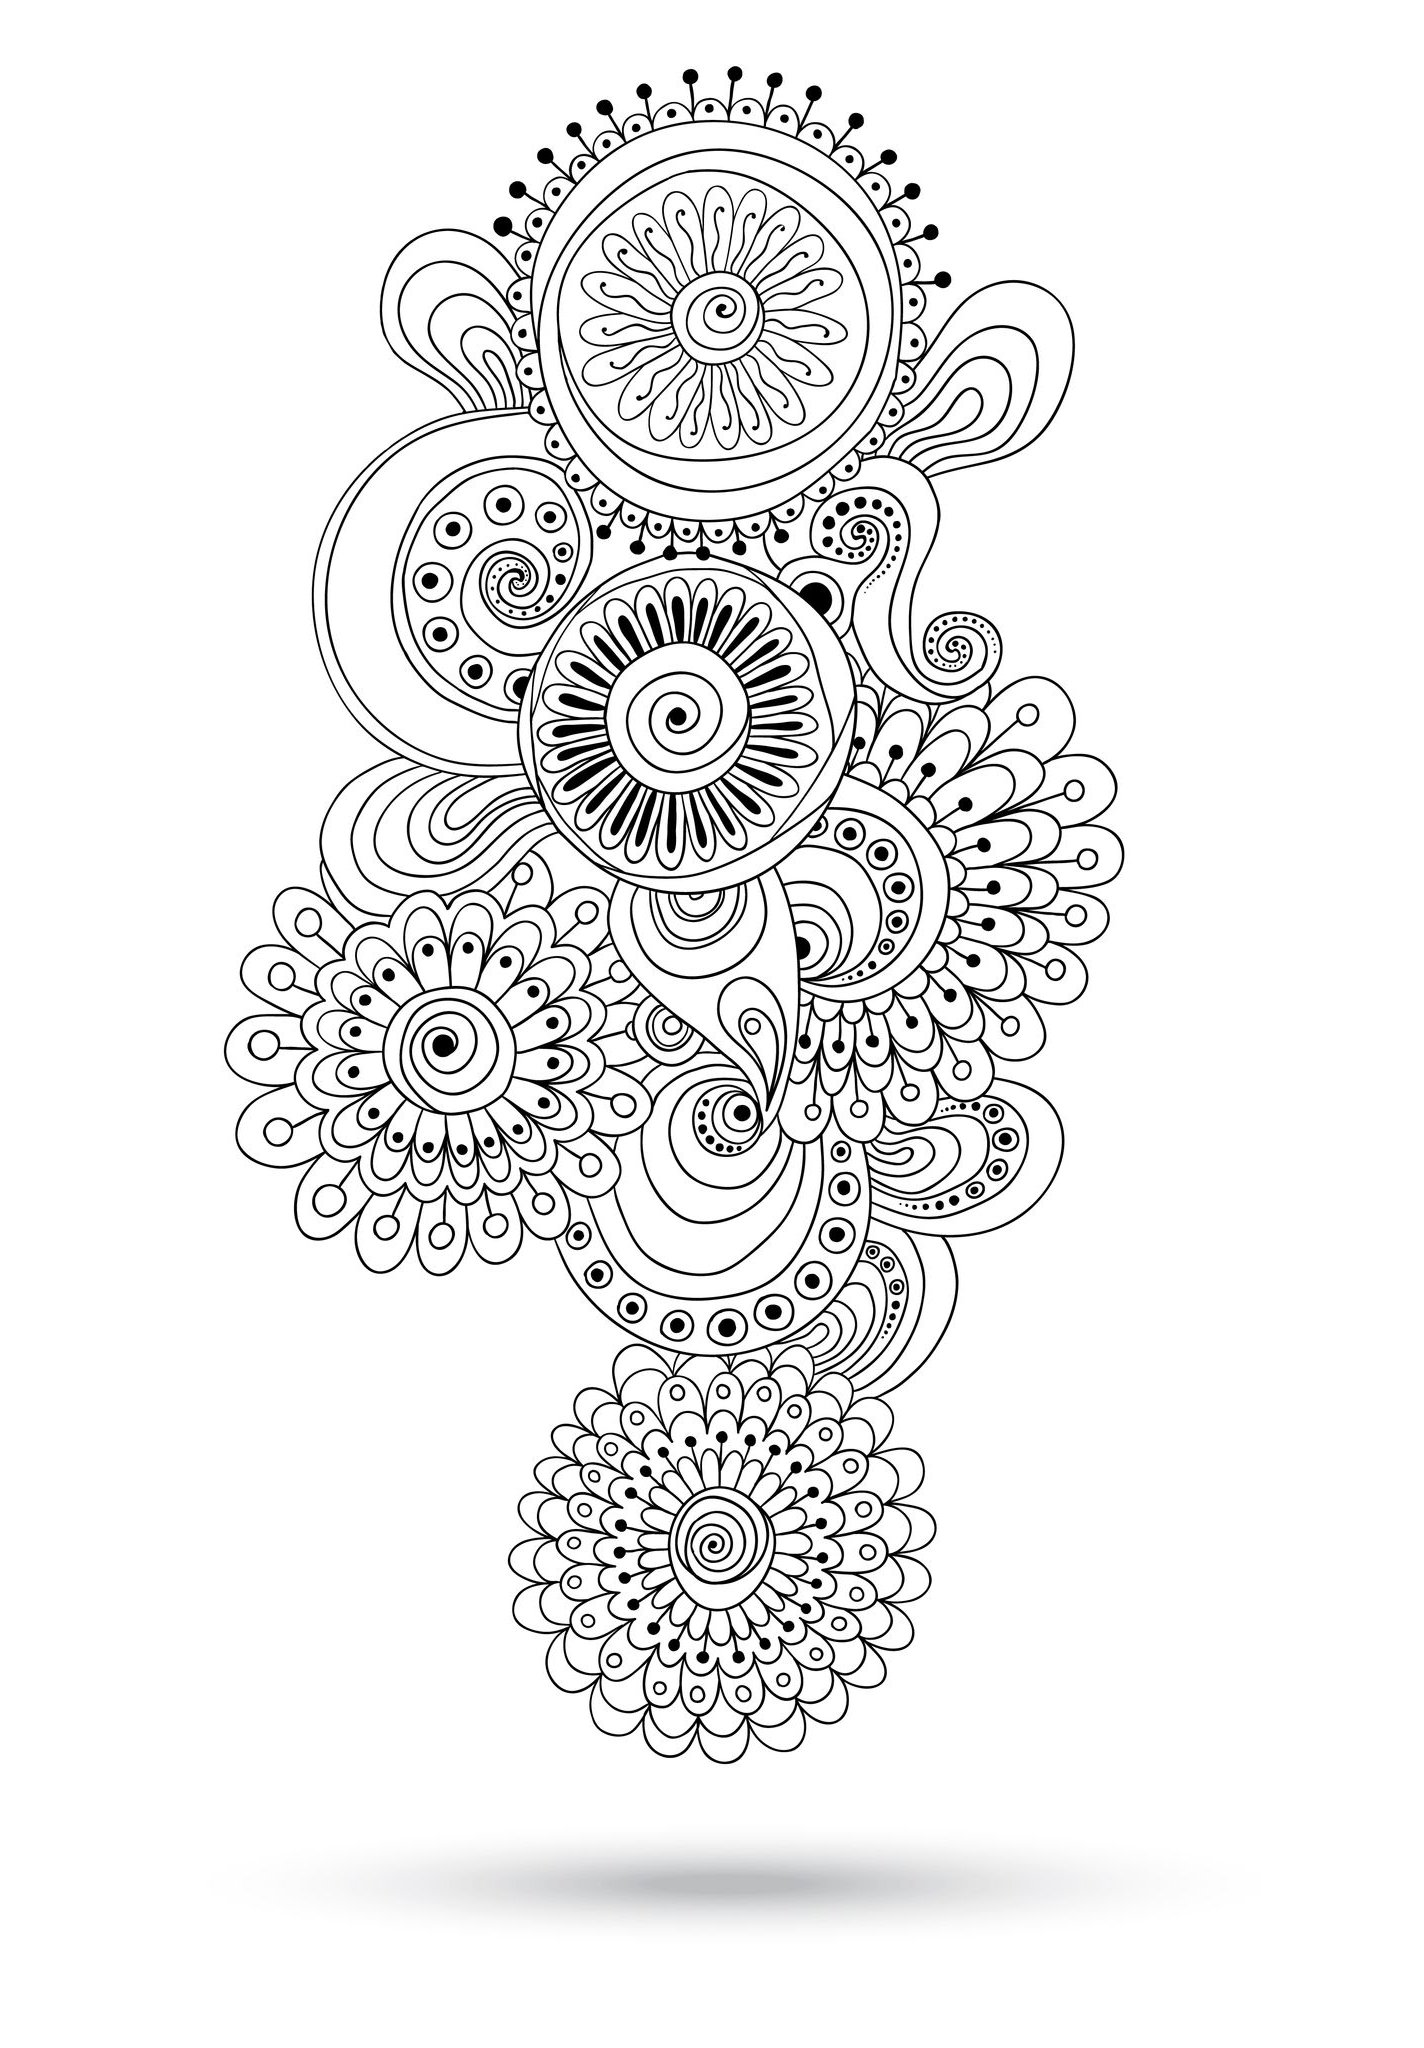 coloriage adulte in n · coloriage ellipse ovale · coloriage anti stress fleur